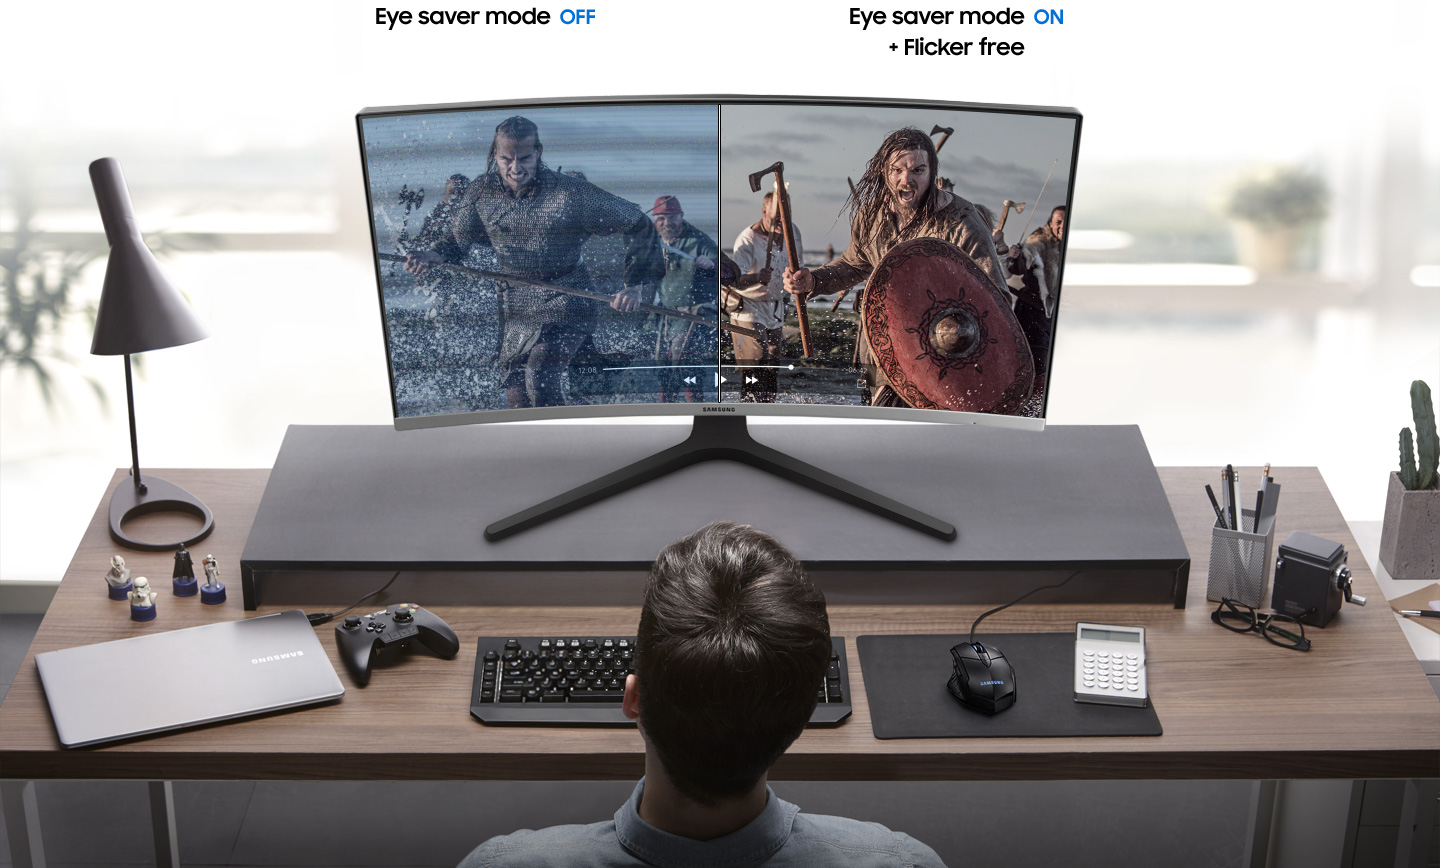 a monitor with a fighting image as screen and splited into two ,showing difference effect between eye saver mode off and on